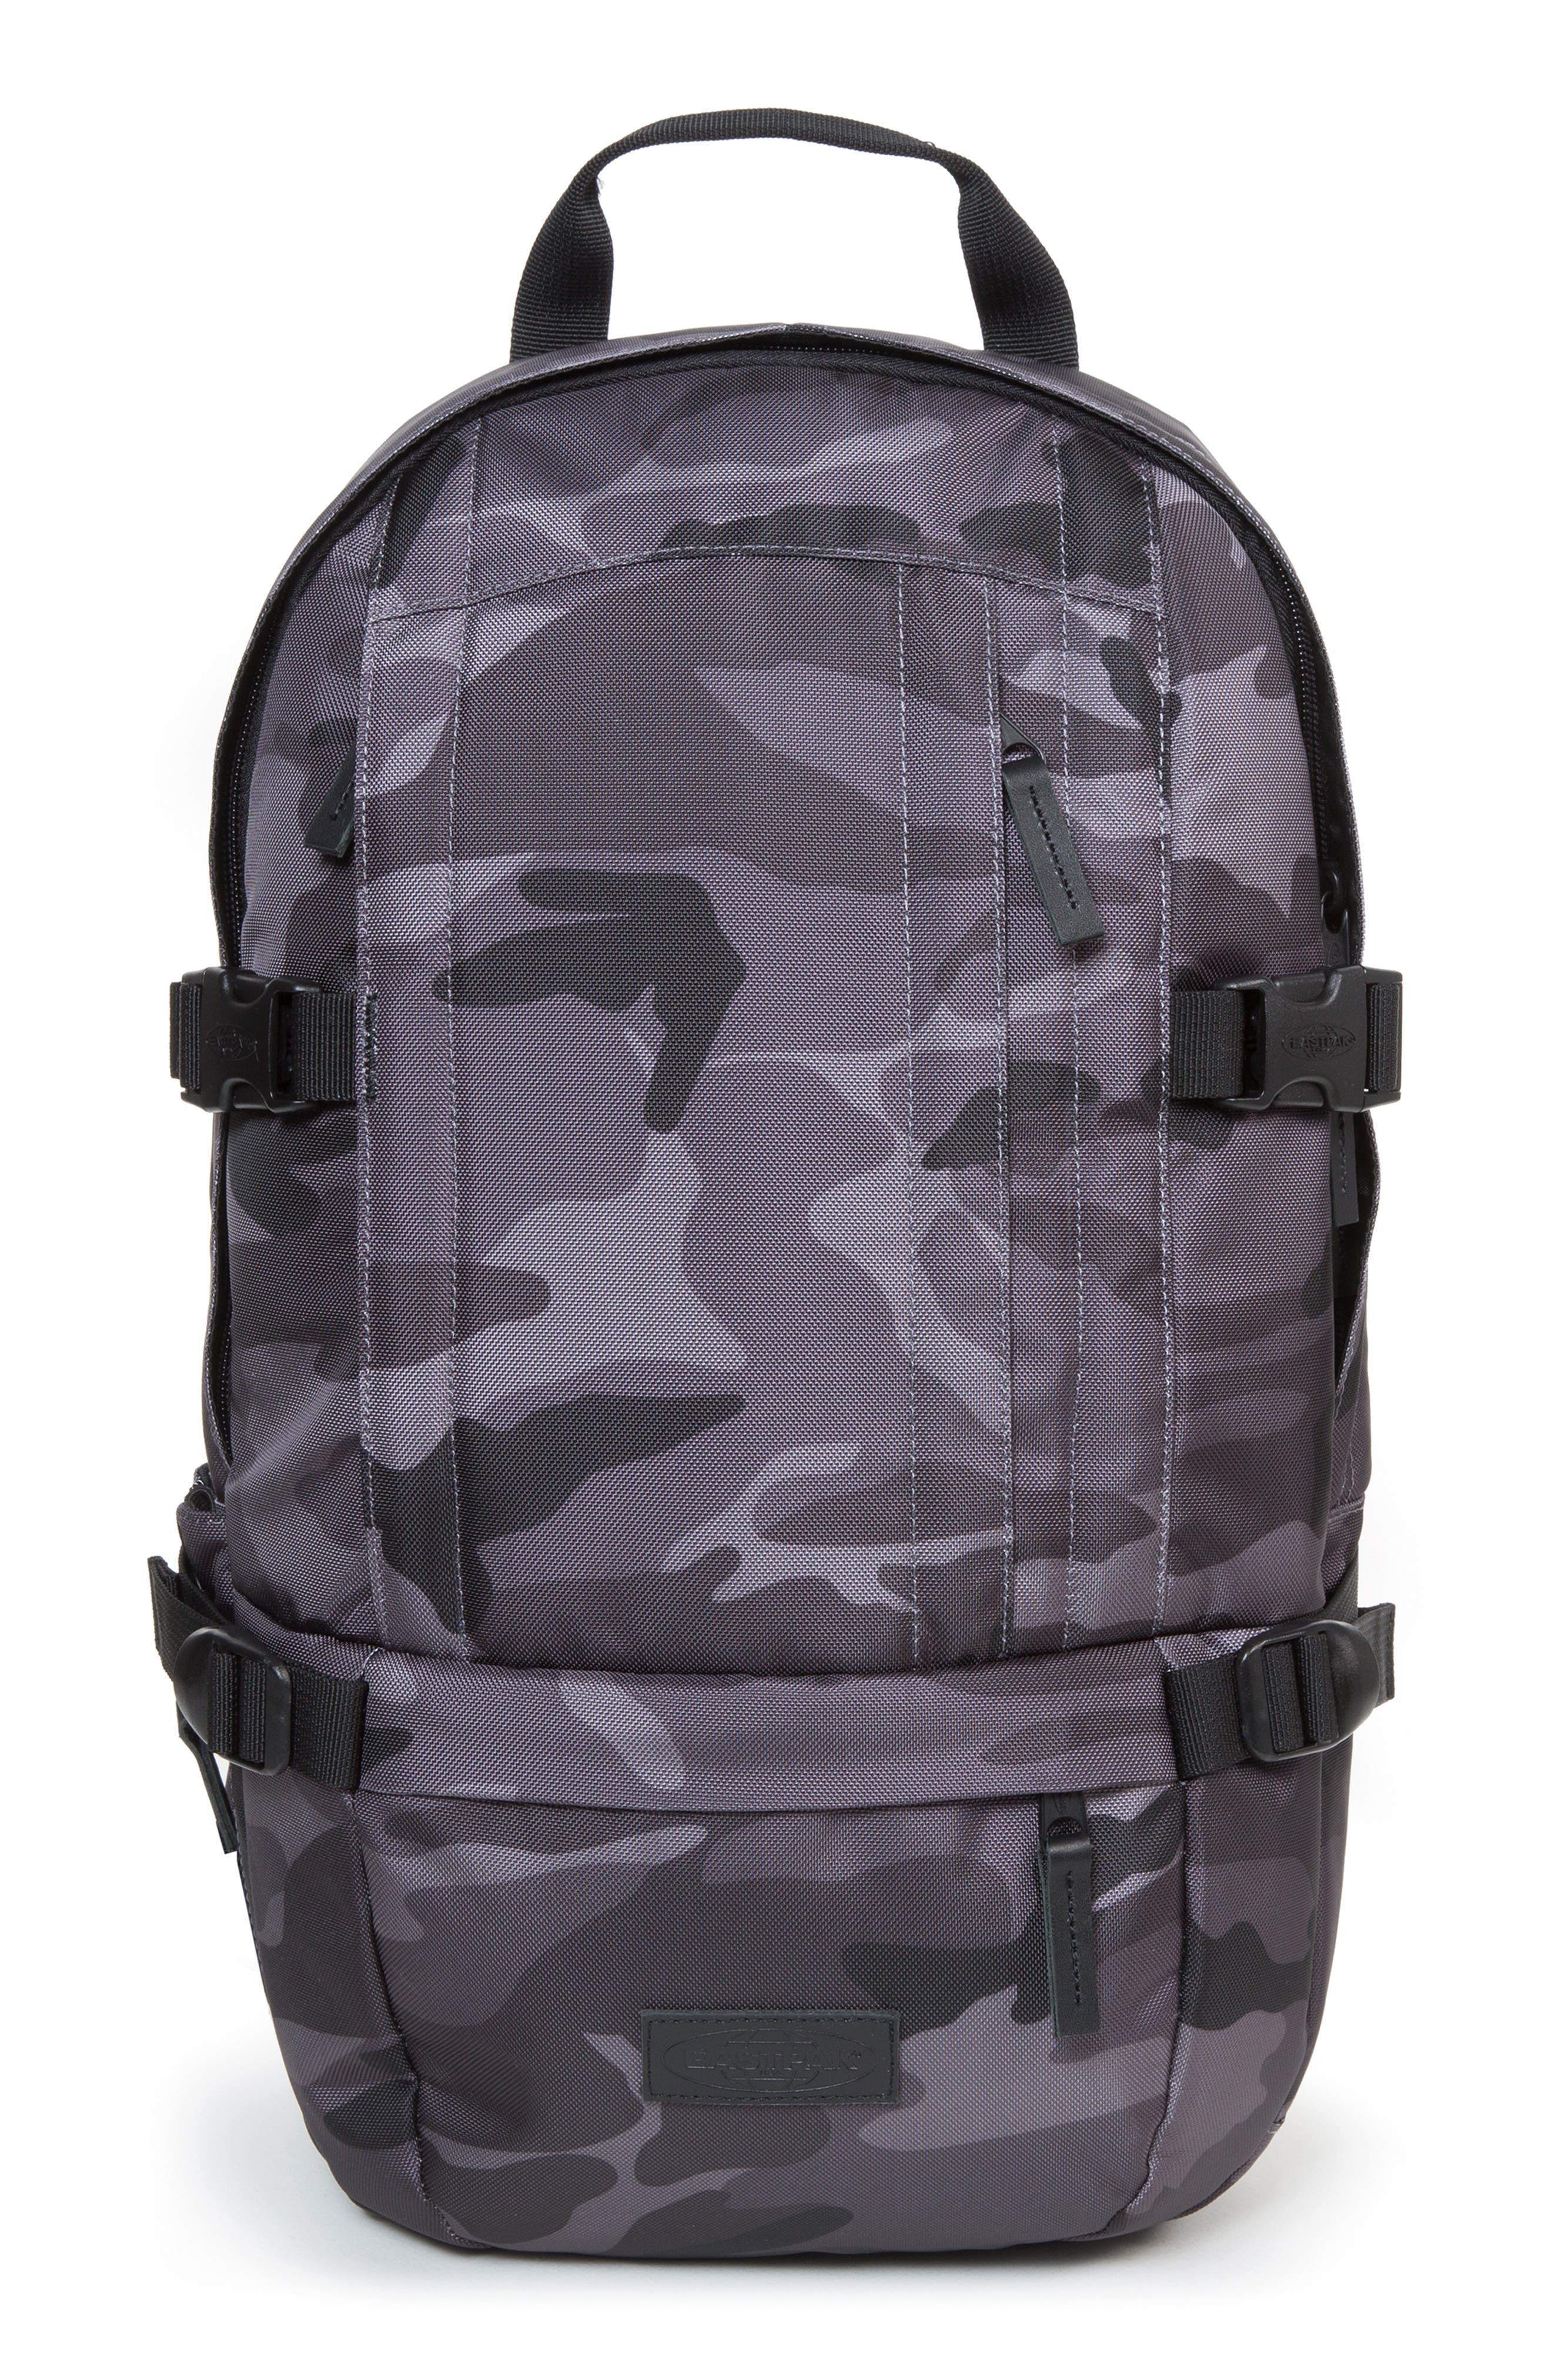 FLOID BACKPACK - BROWN